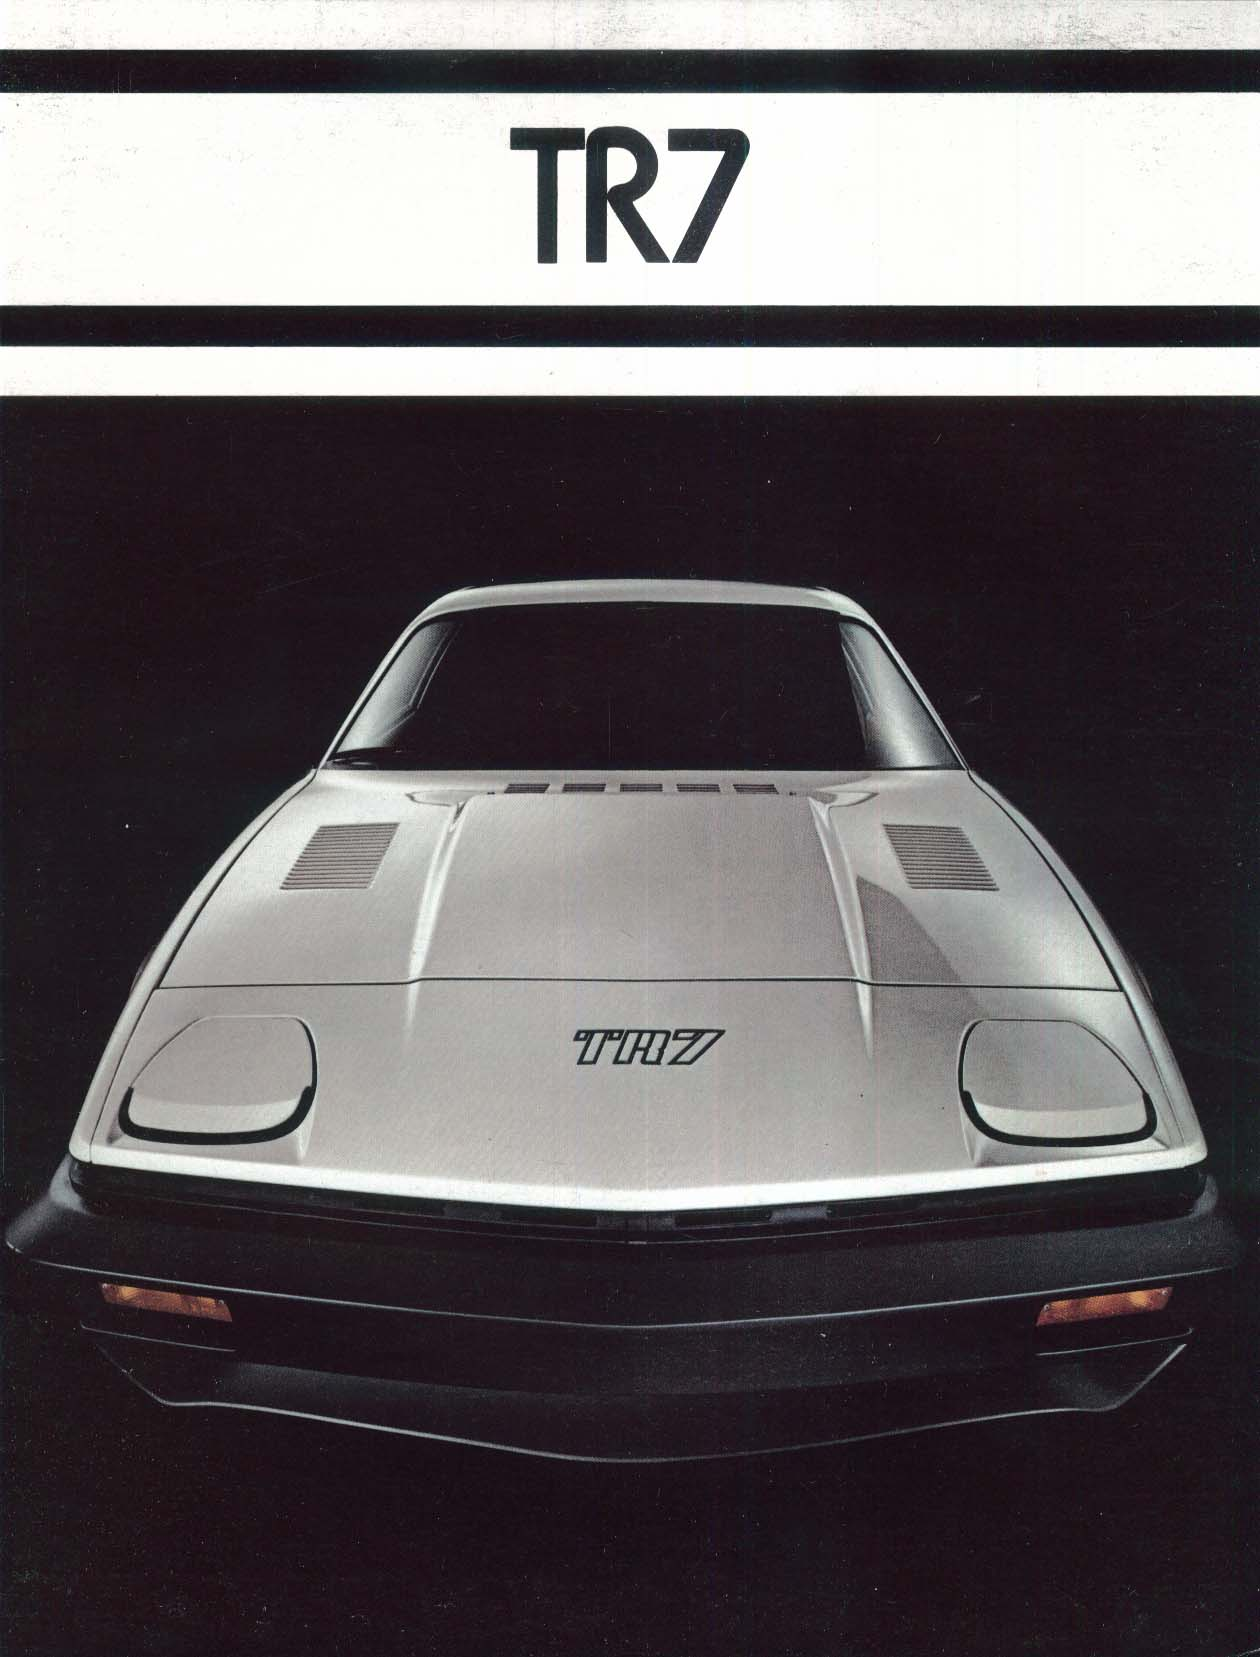 Image for 1977 Triumph TR-7 sales brochure